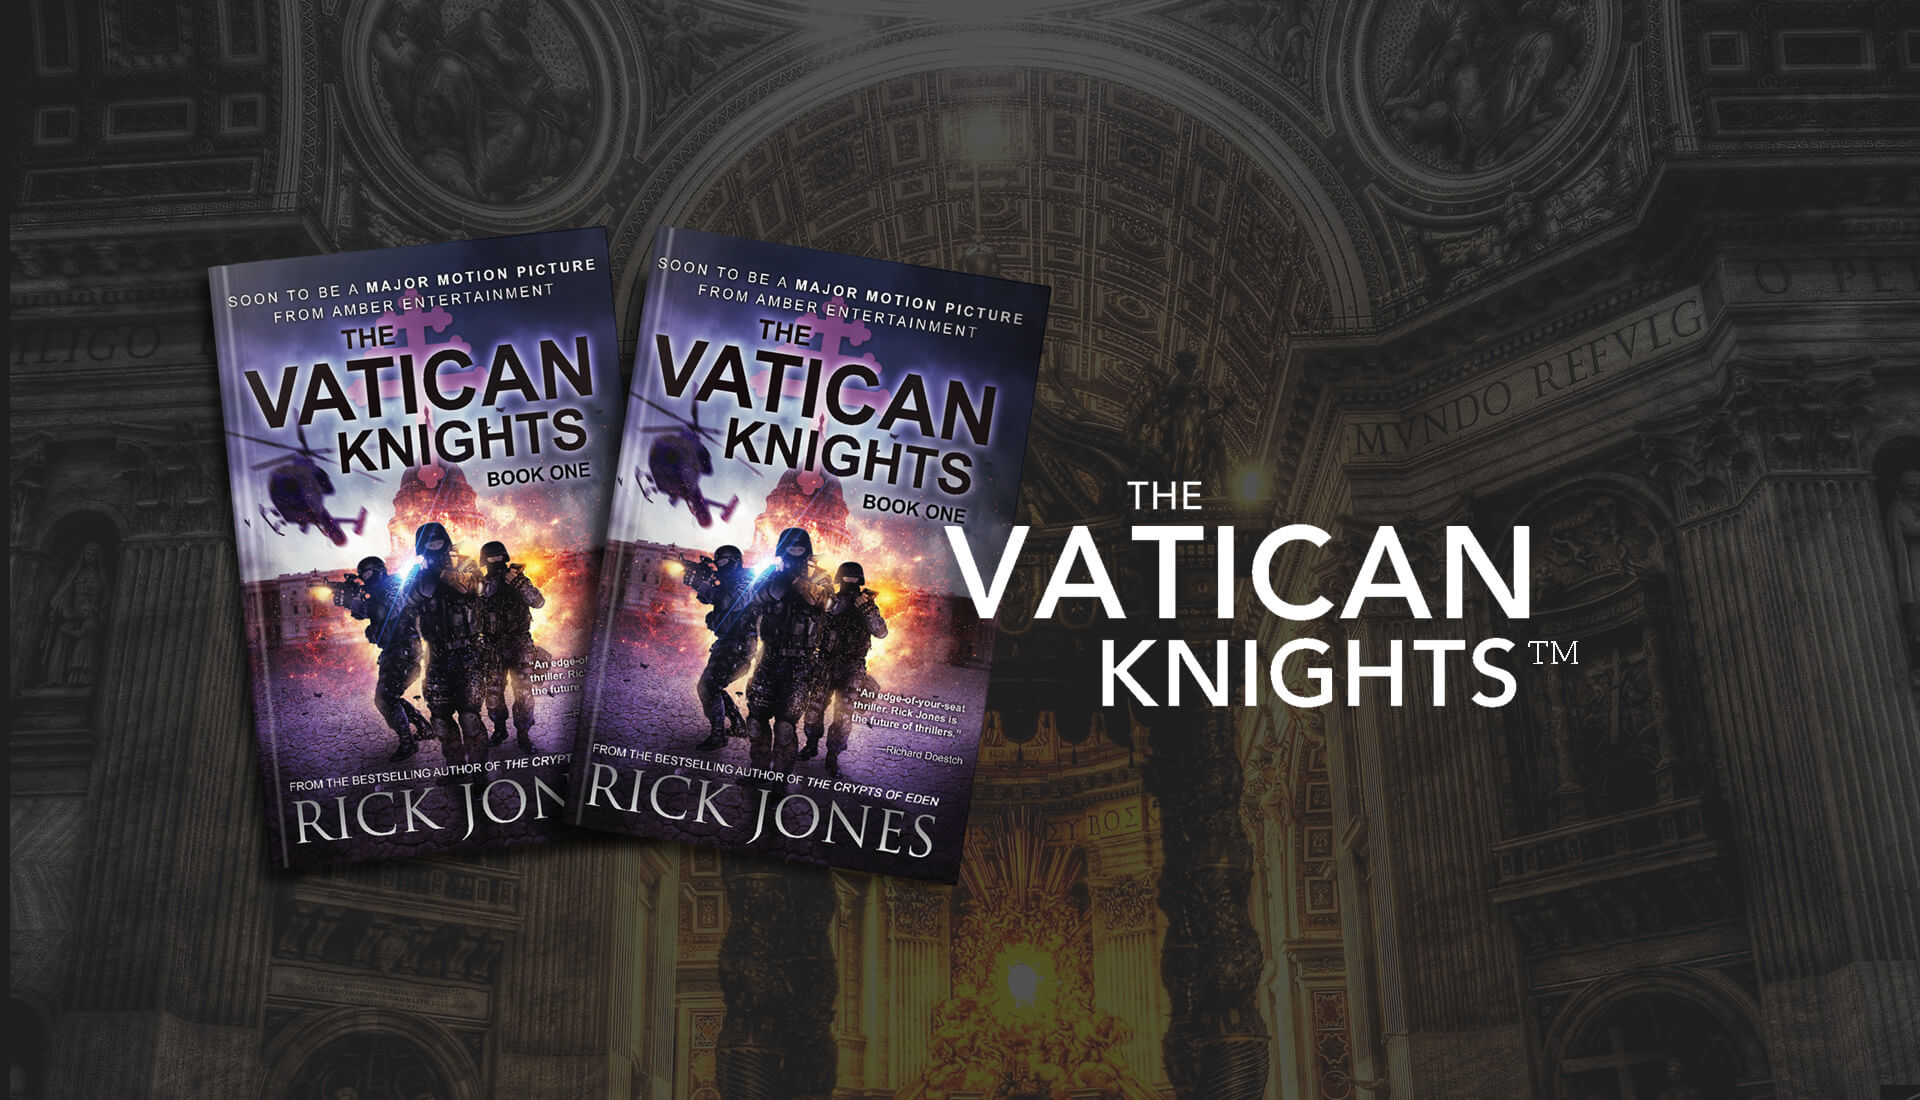 The Vatican Knights ™